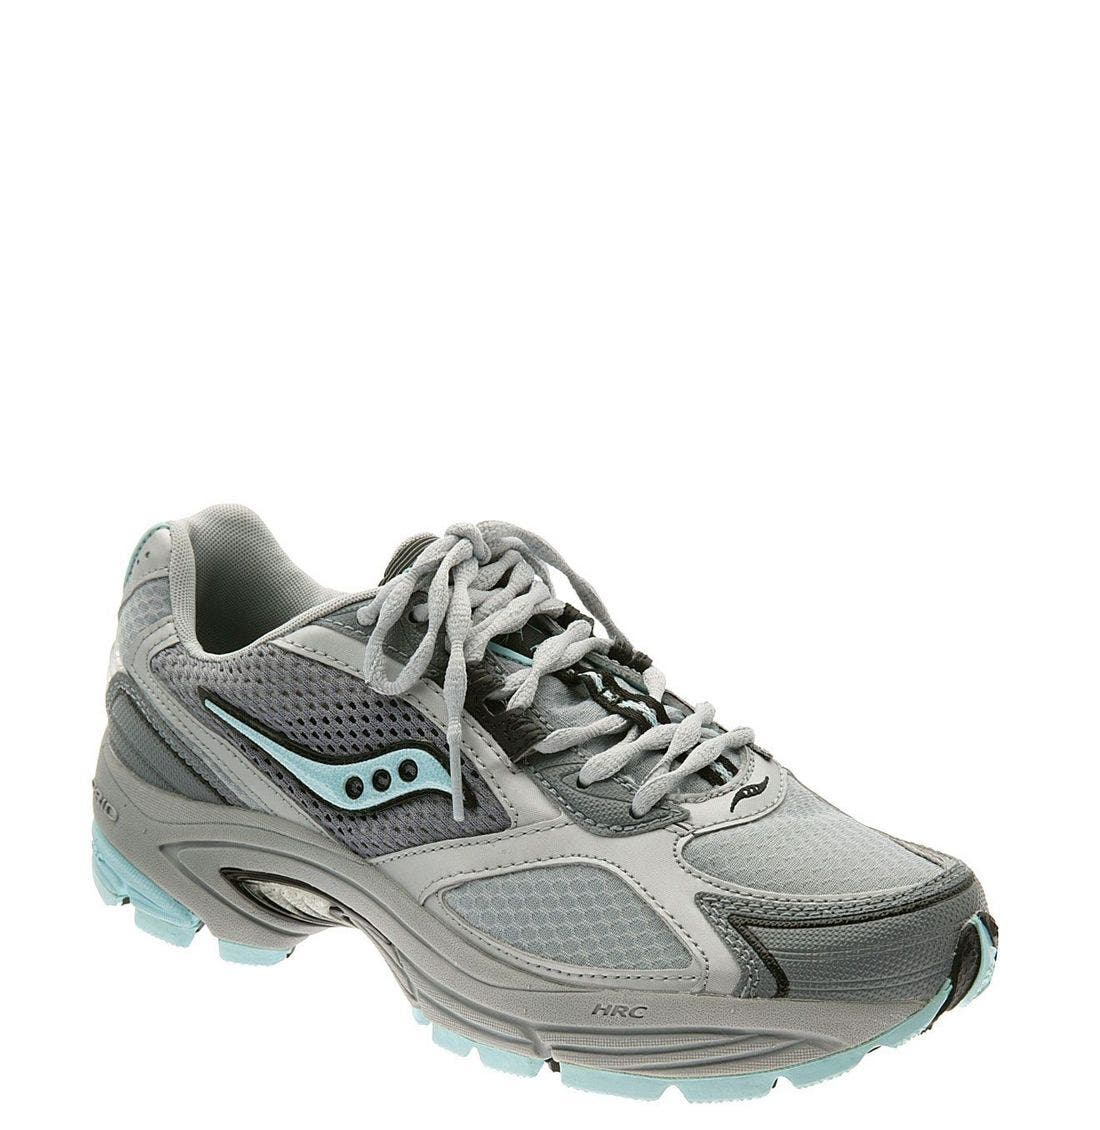 Men's Grid Omni 5 Trail Running Shoe